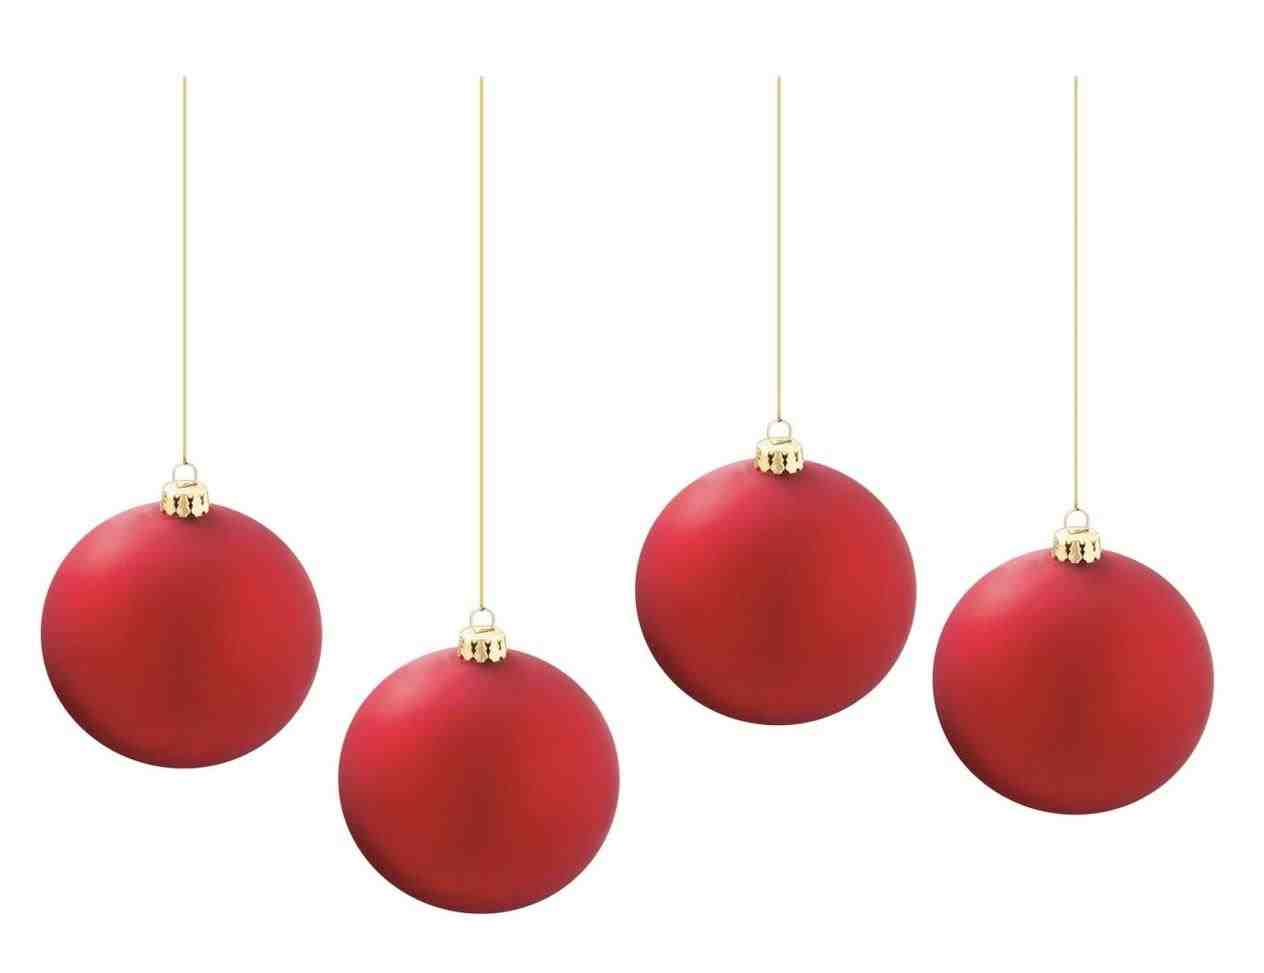 1264x973 Hanging Christmas Ornament Clipart Cheminee.website